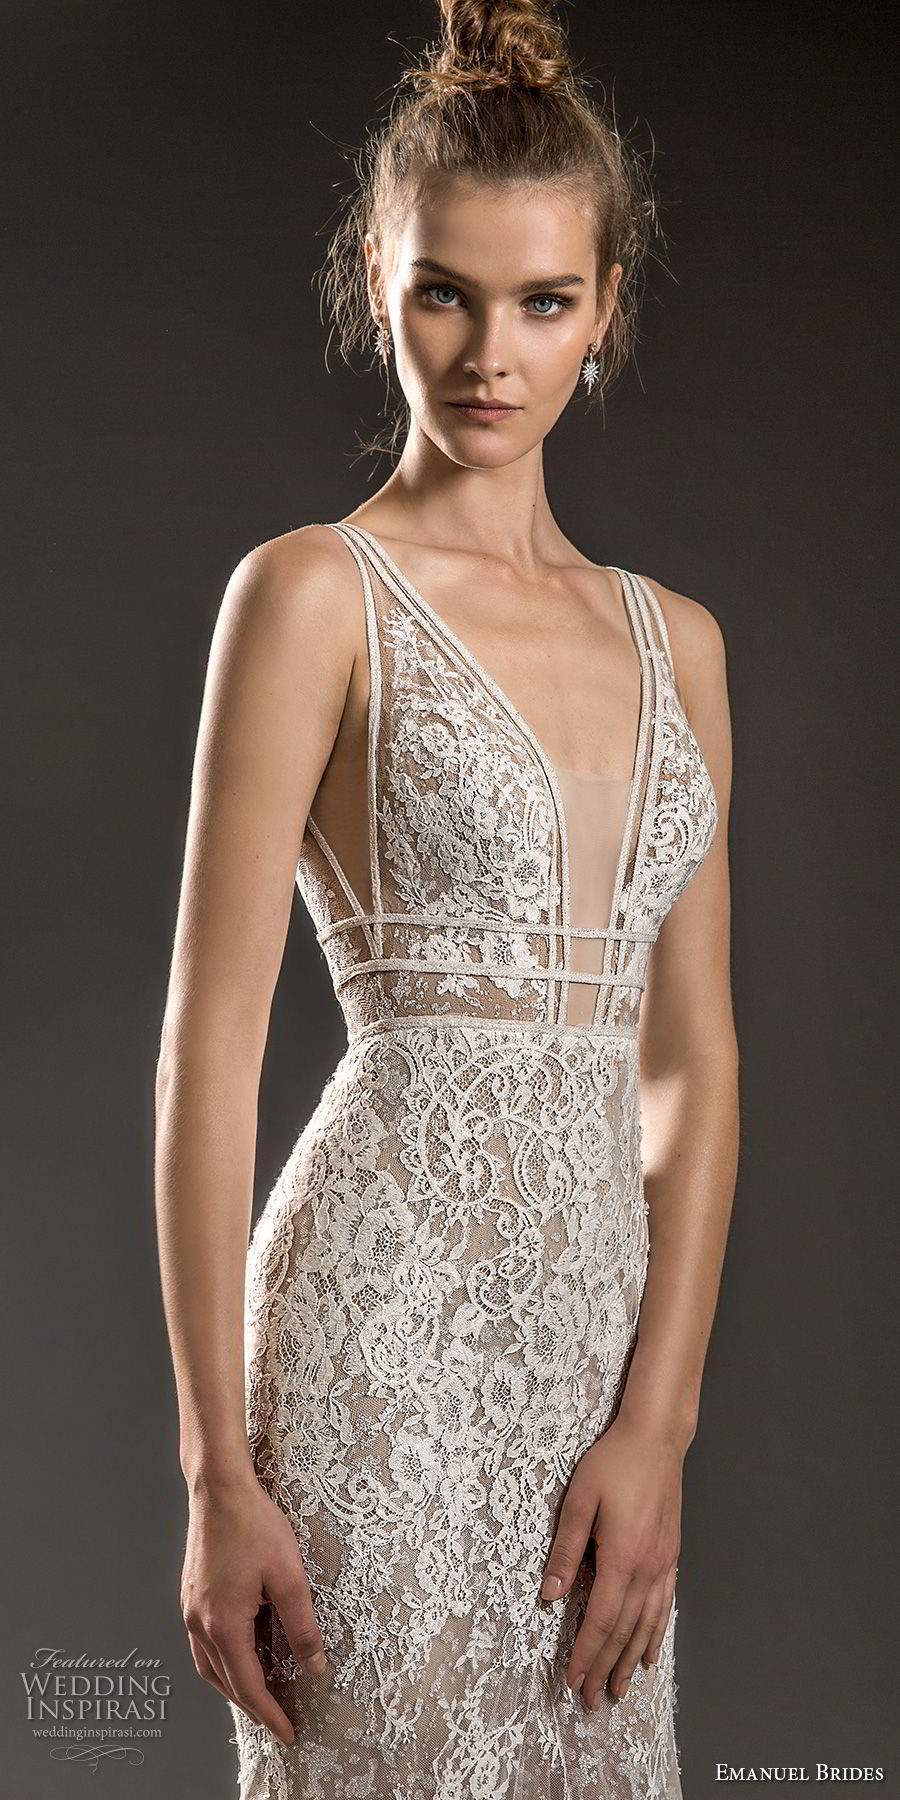 emanuel brides 2018 bridal sleeveless with strap deep plunging v neck full embellishment elegant sexy fit and flare mermaid wedding dress sweep train (10) zv